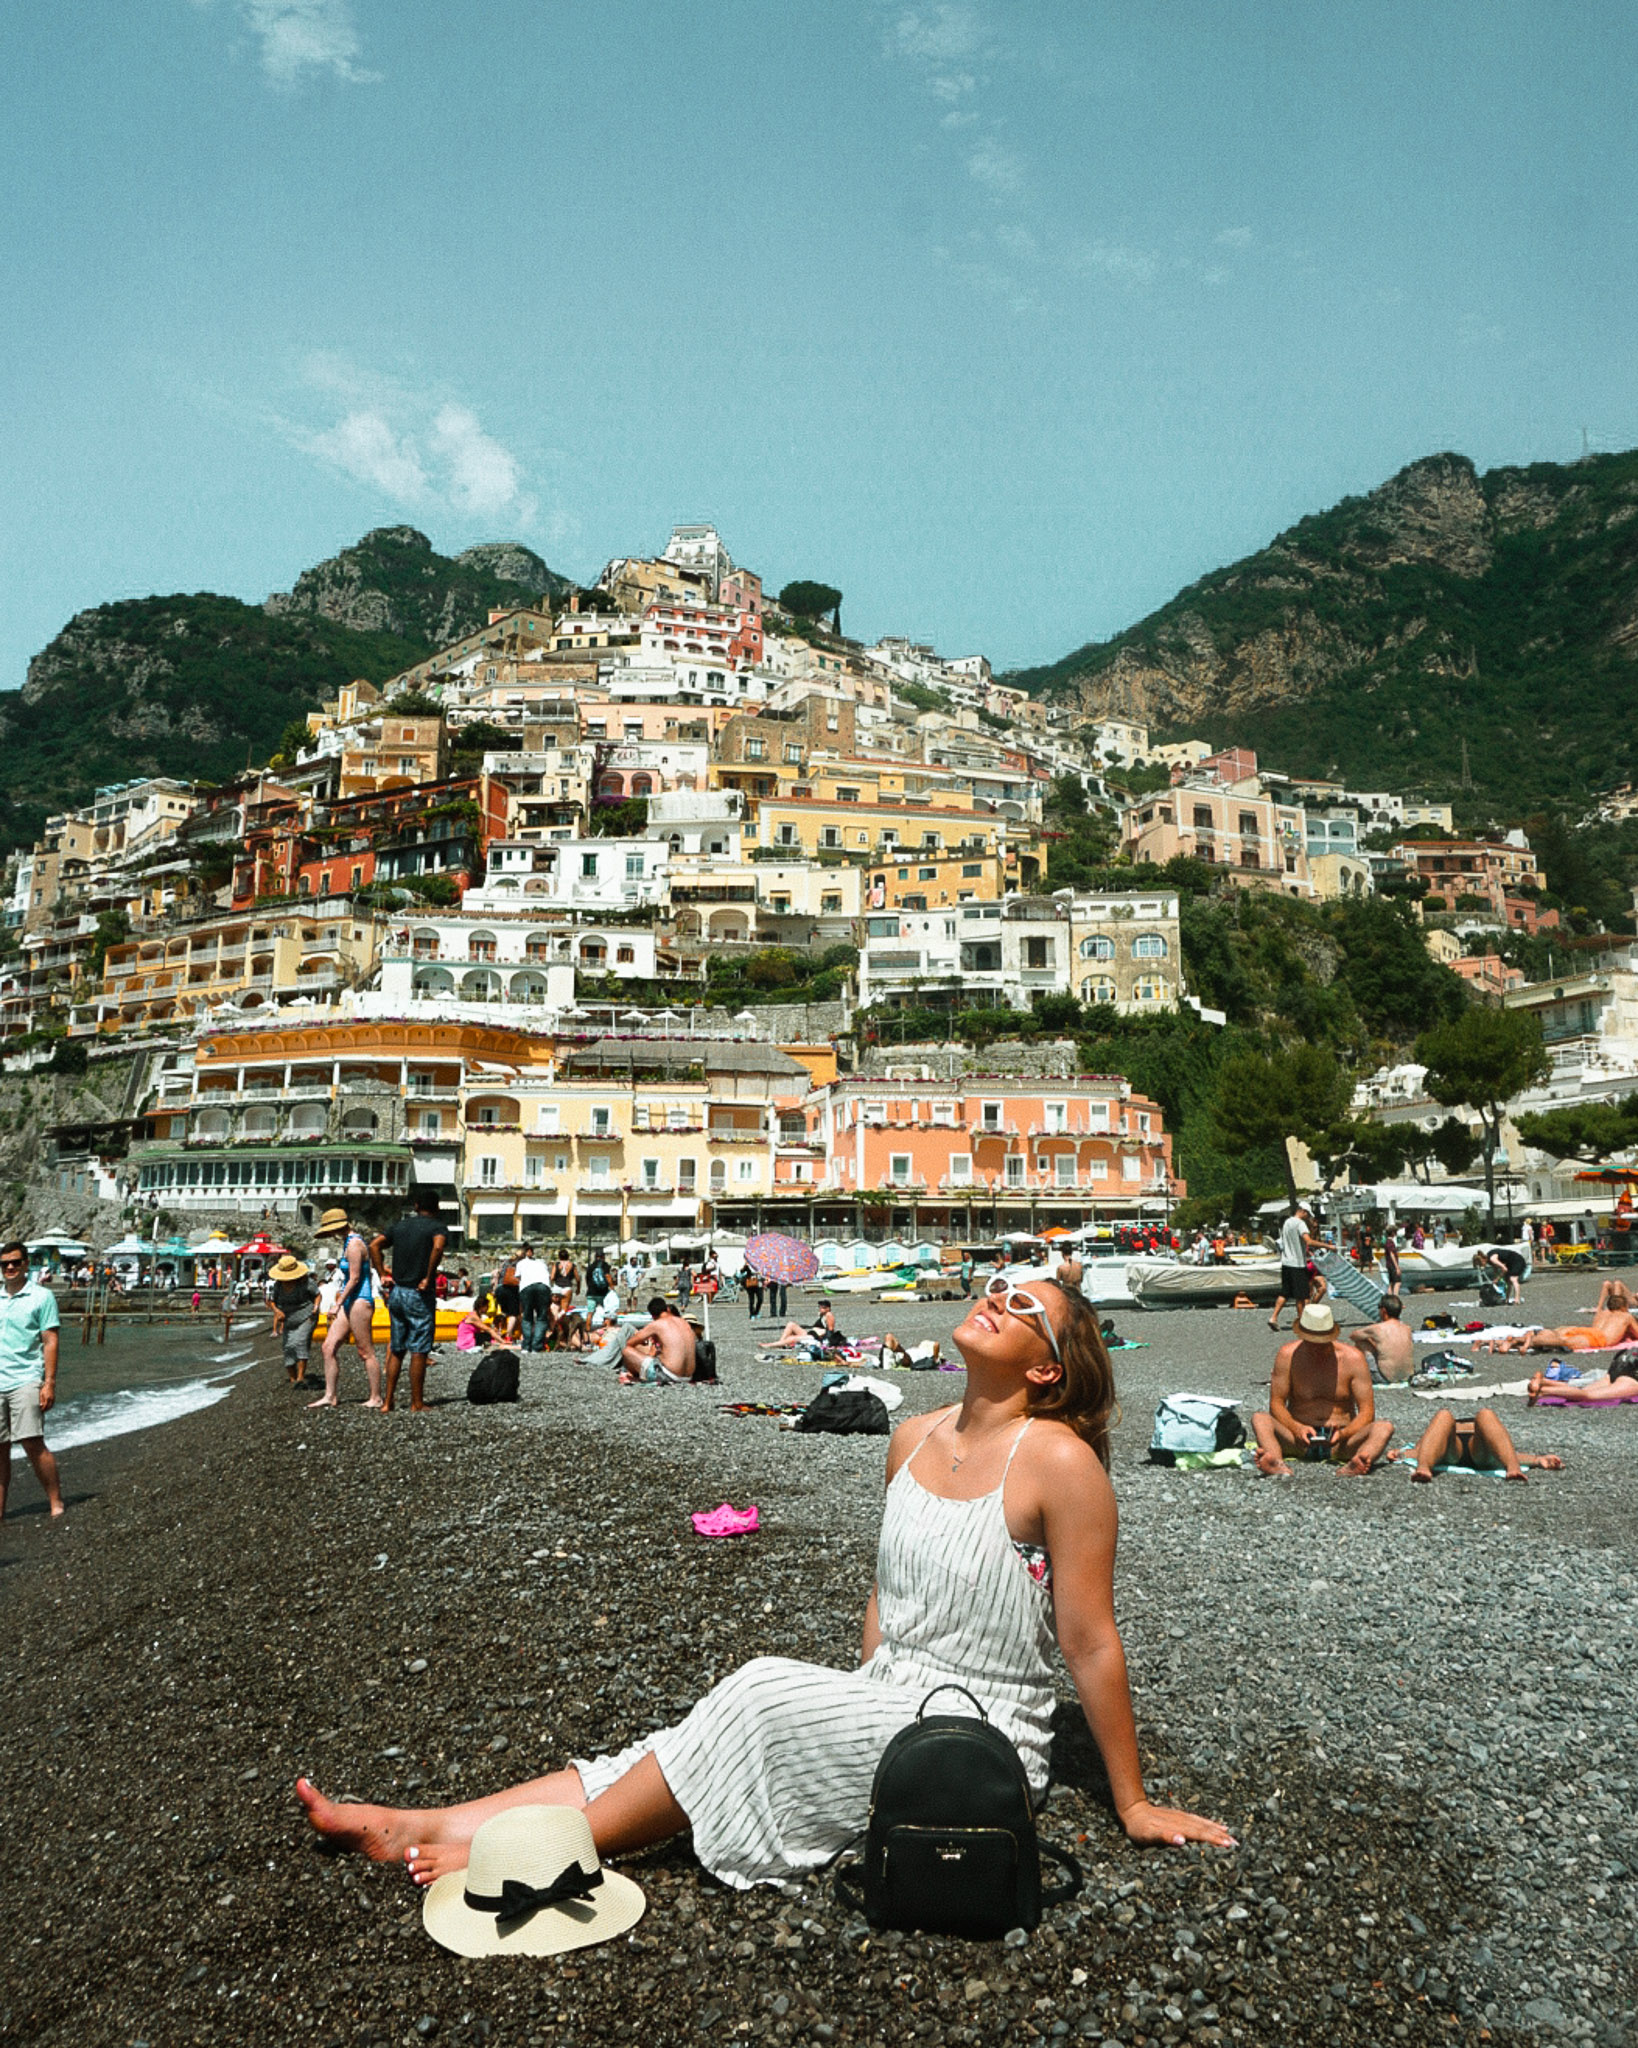 The Amalfi Coast - The Adventure Decade